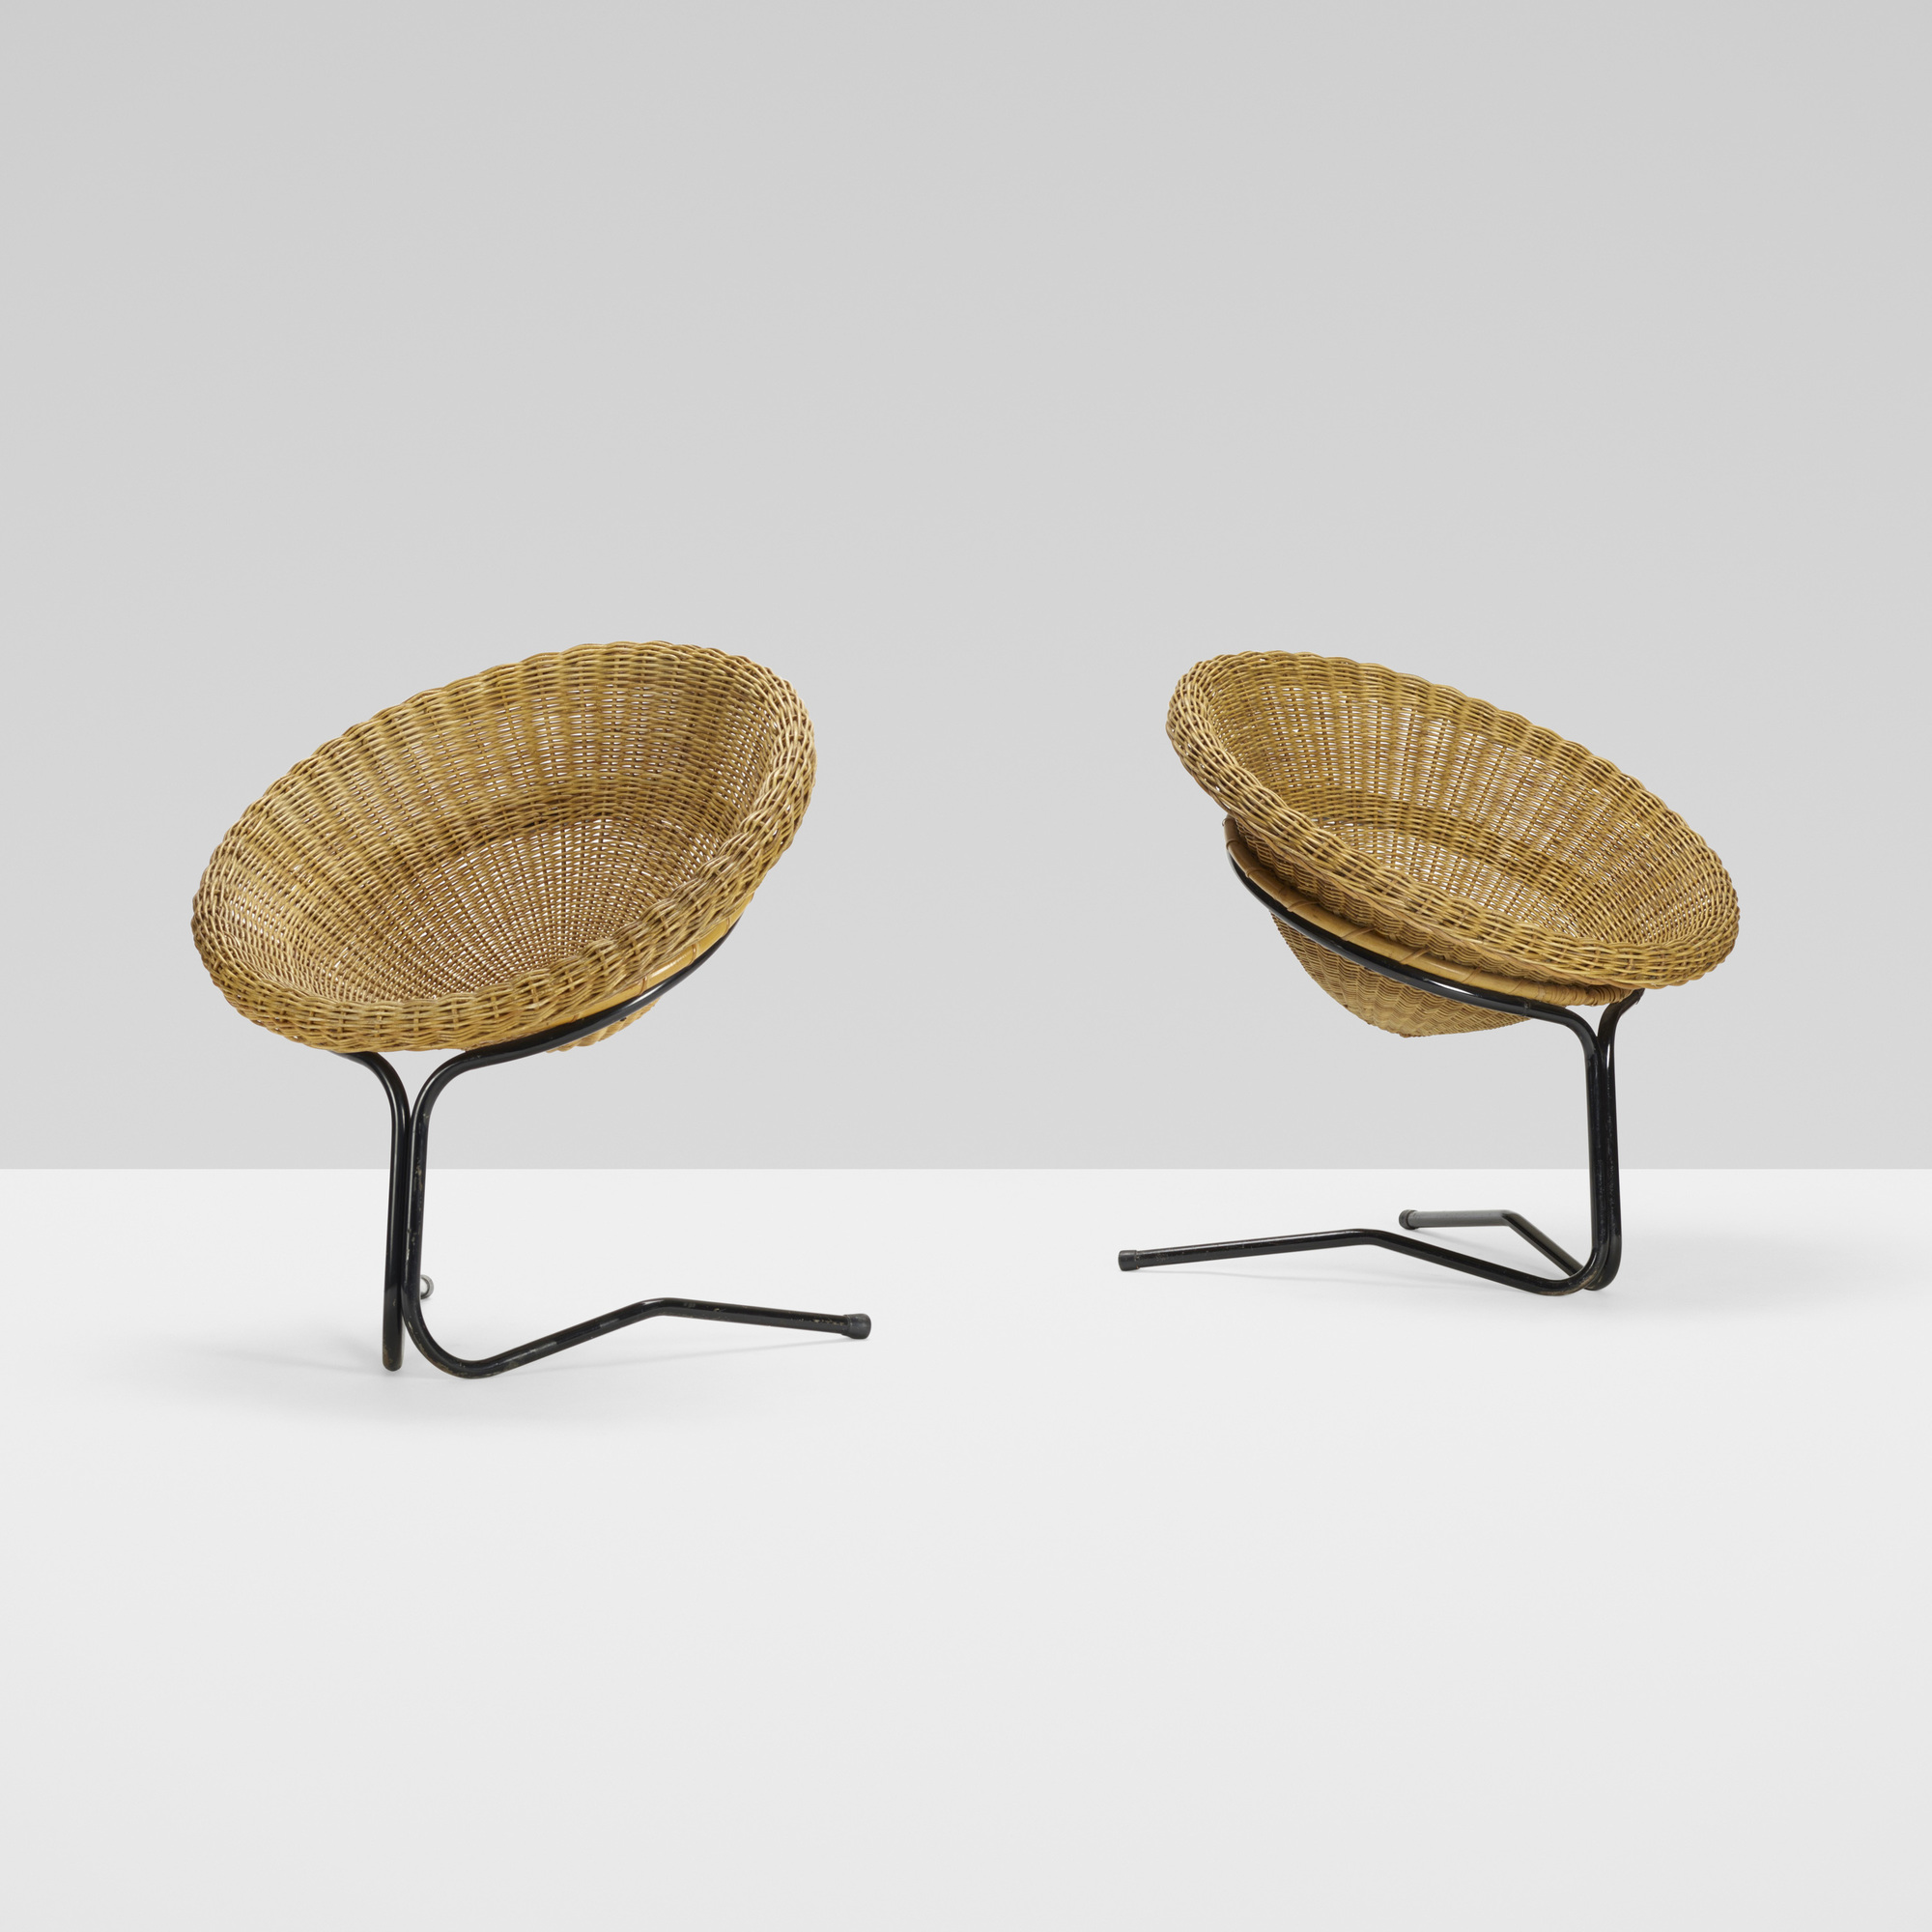 381: Arnold Bueno de Mesquita / pair of cantilever chairs (2 of 4)